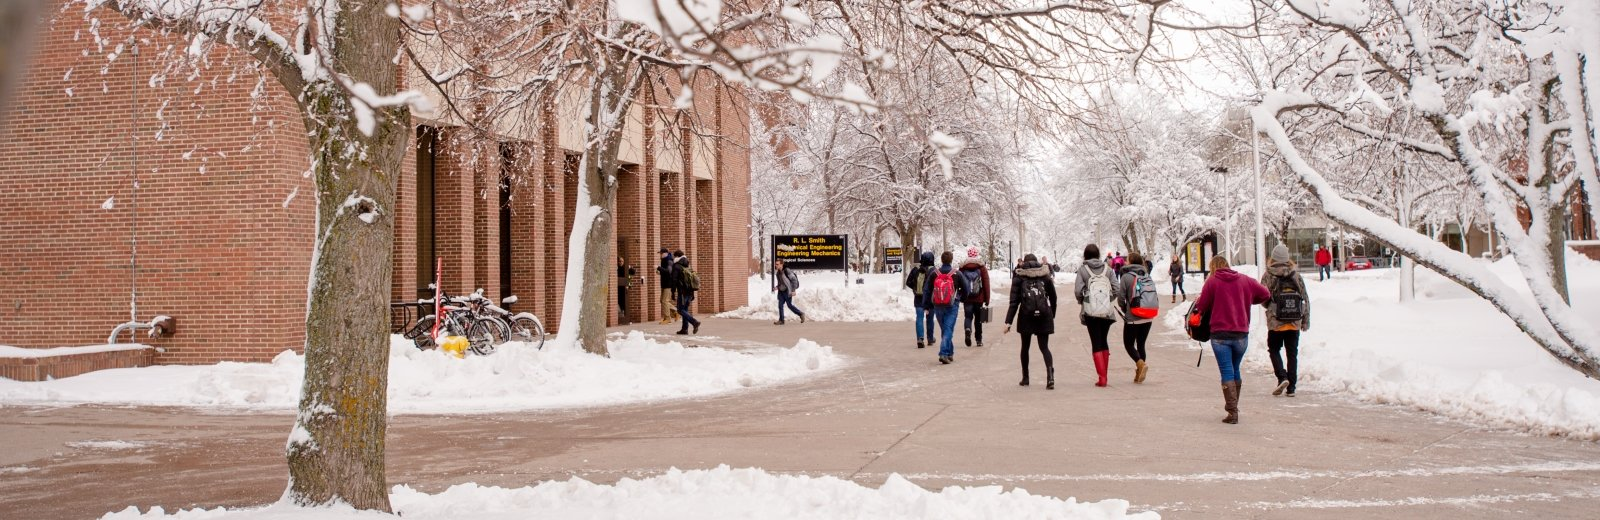 Campus during the winter.